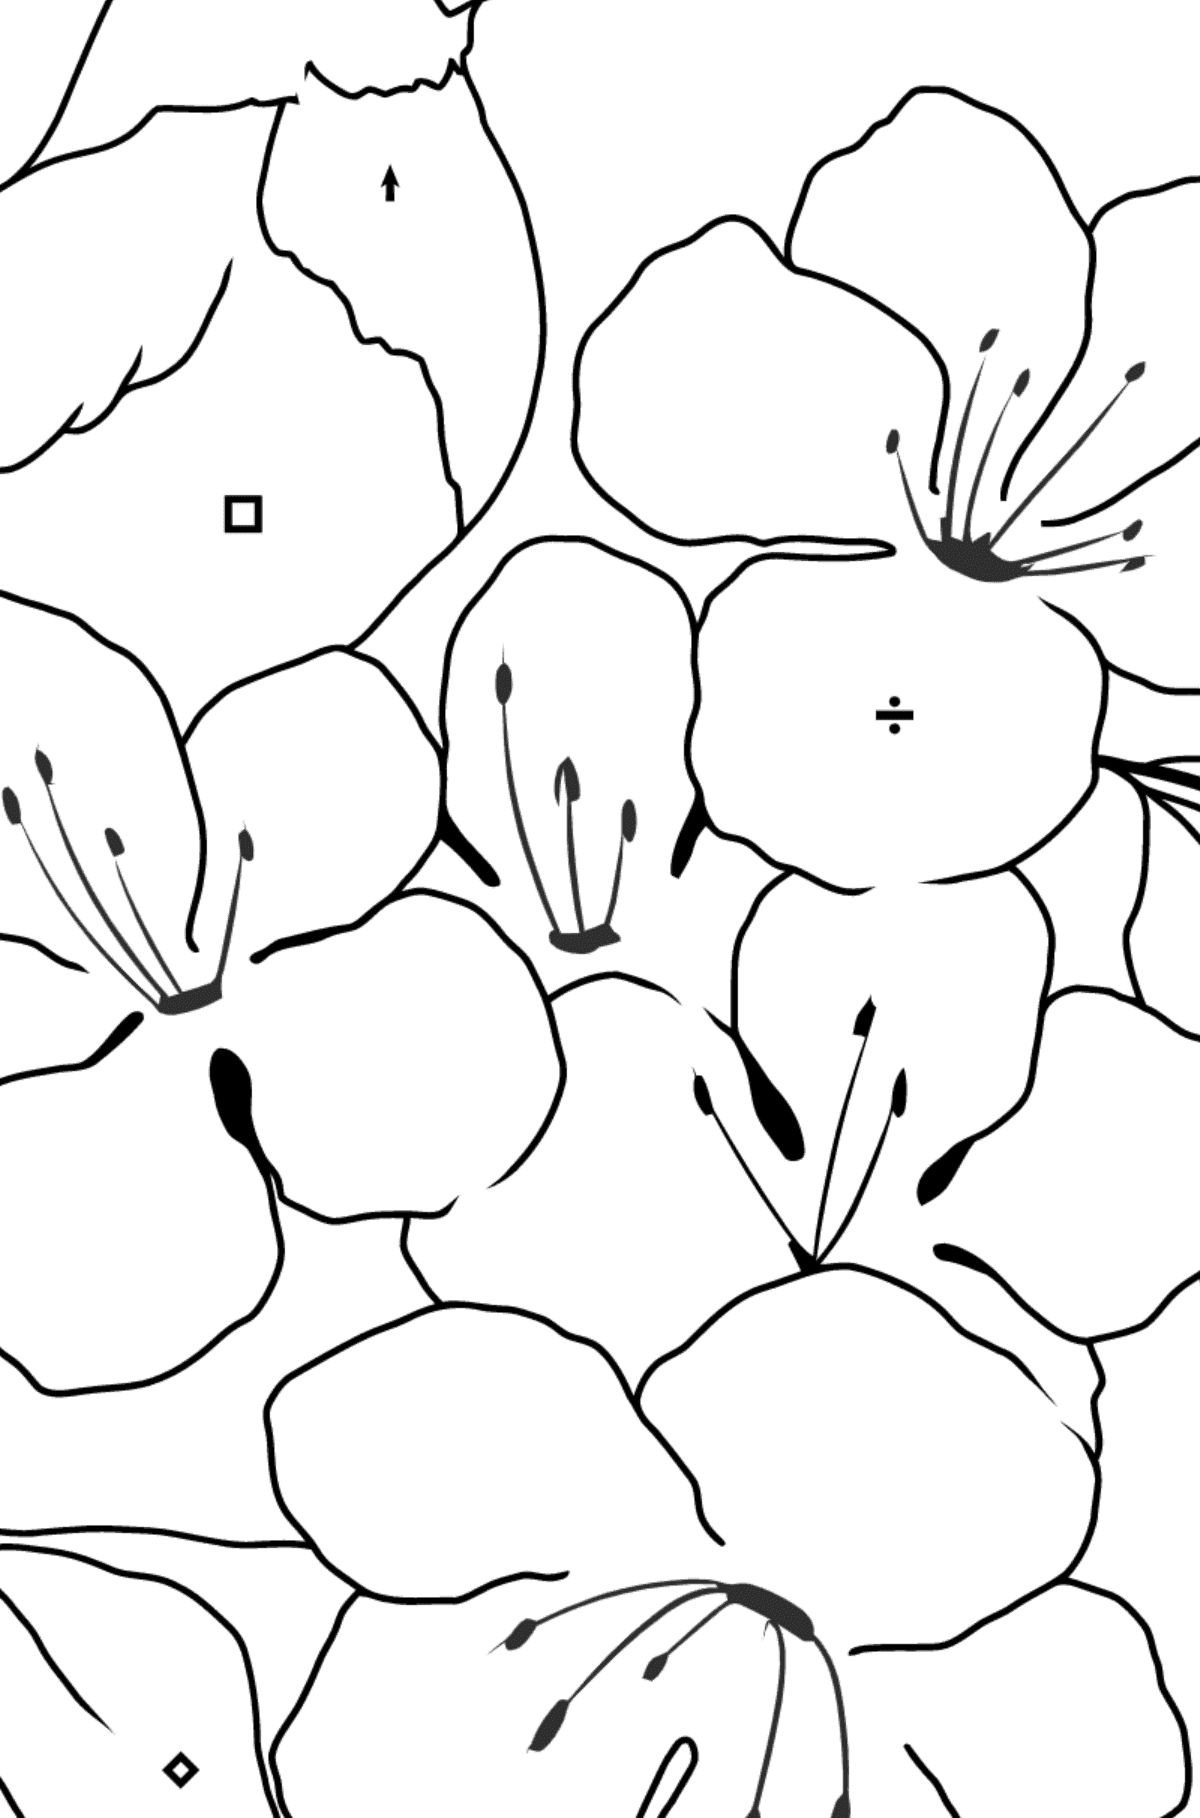 Summer Coloring Page - A Bird is Chirping on a Branch with Flowers for Children  - Color by Special Symbols